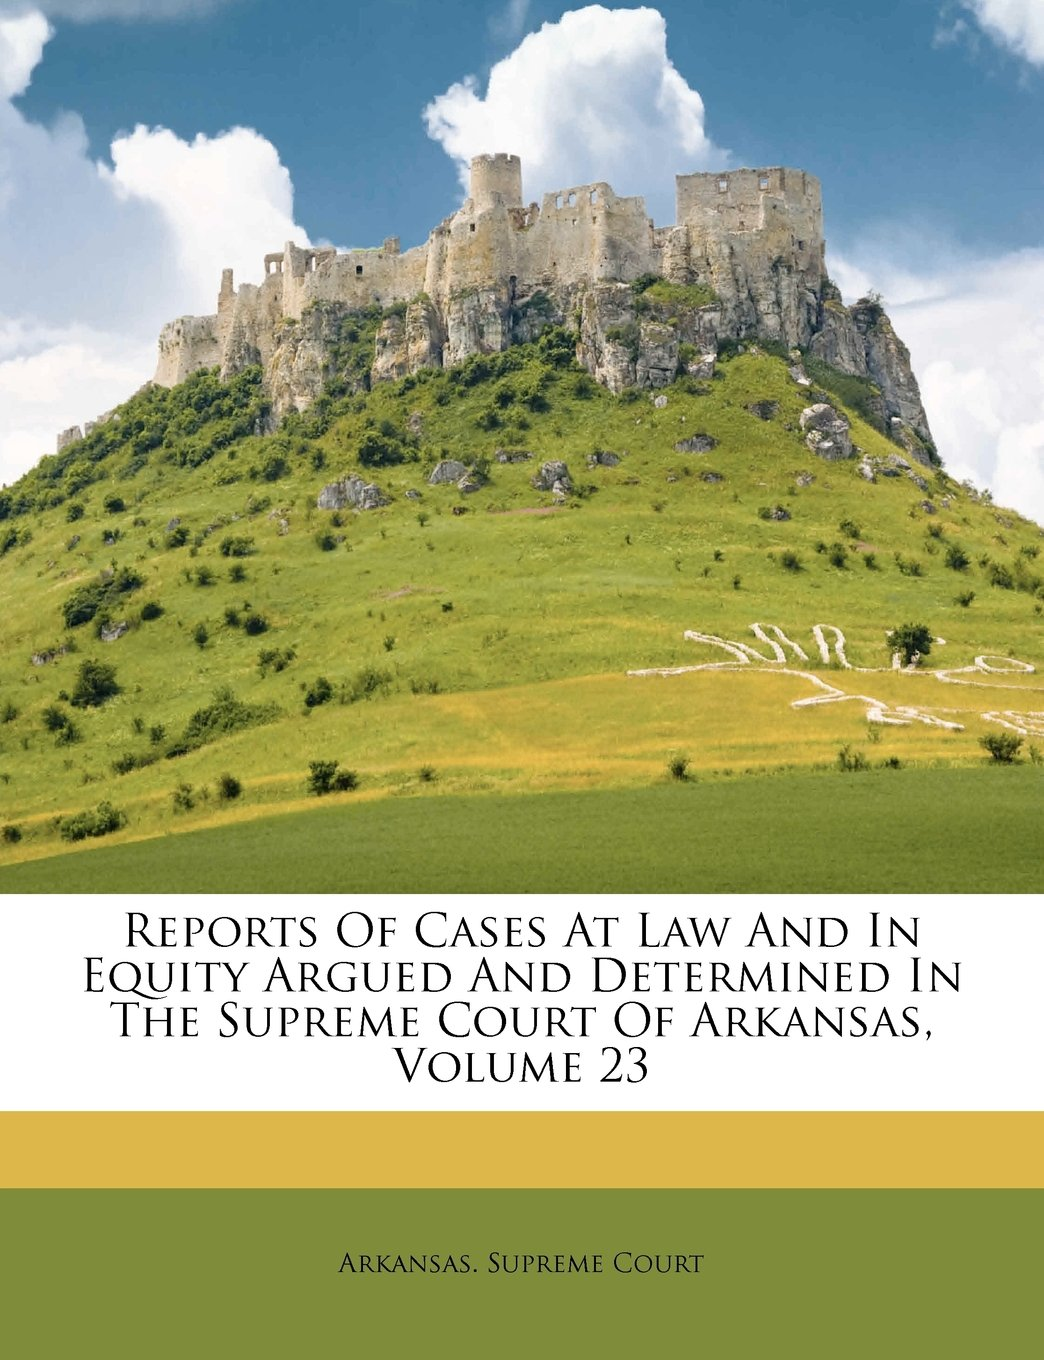 Download Reports Of Cases At Law And In Equity Argued And Determined In The Supreme Court Of Arkansas, Volume 23 PDF